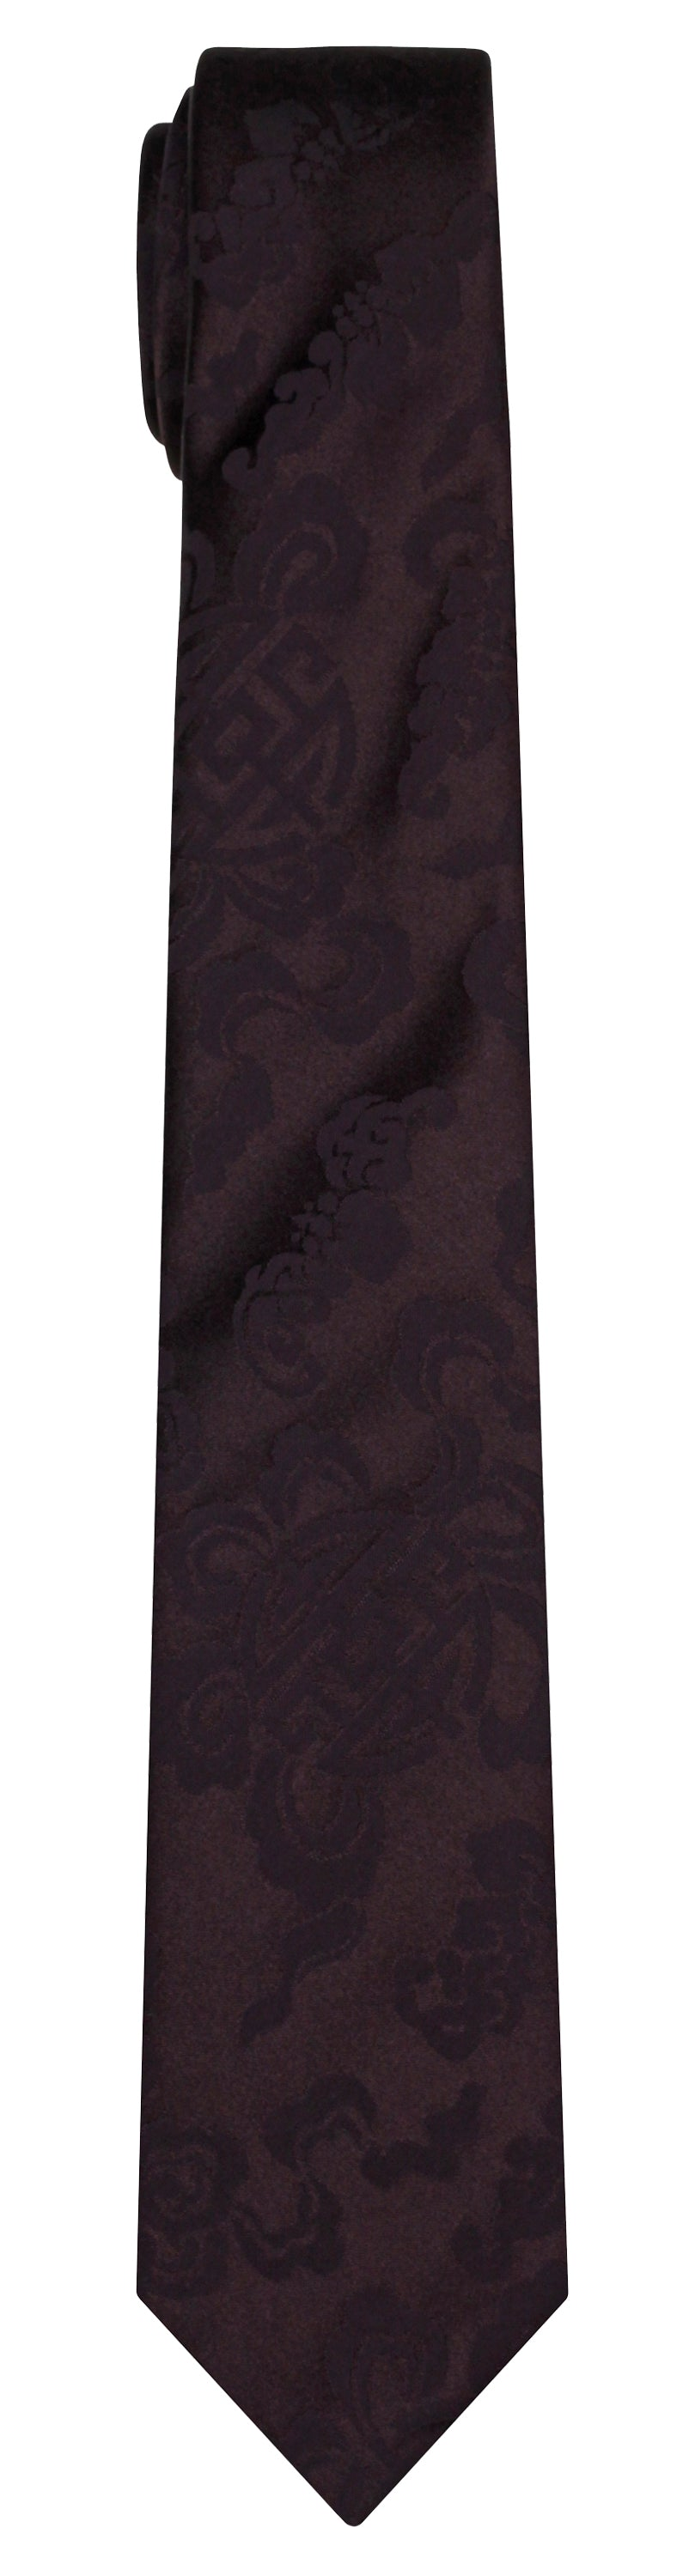 Mimi Fong Nebula Tie in Brown